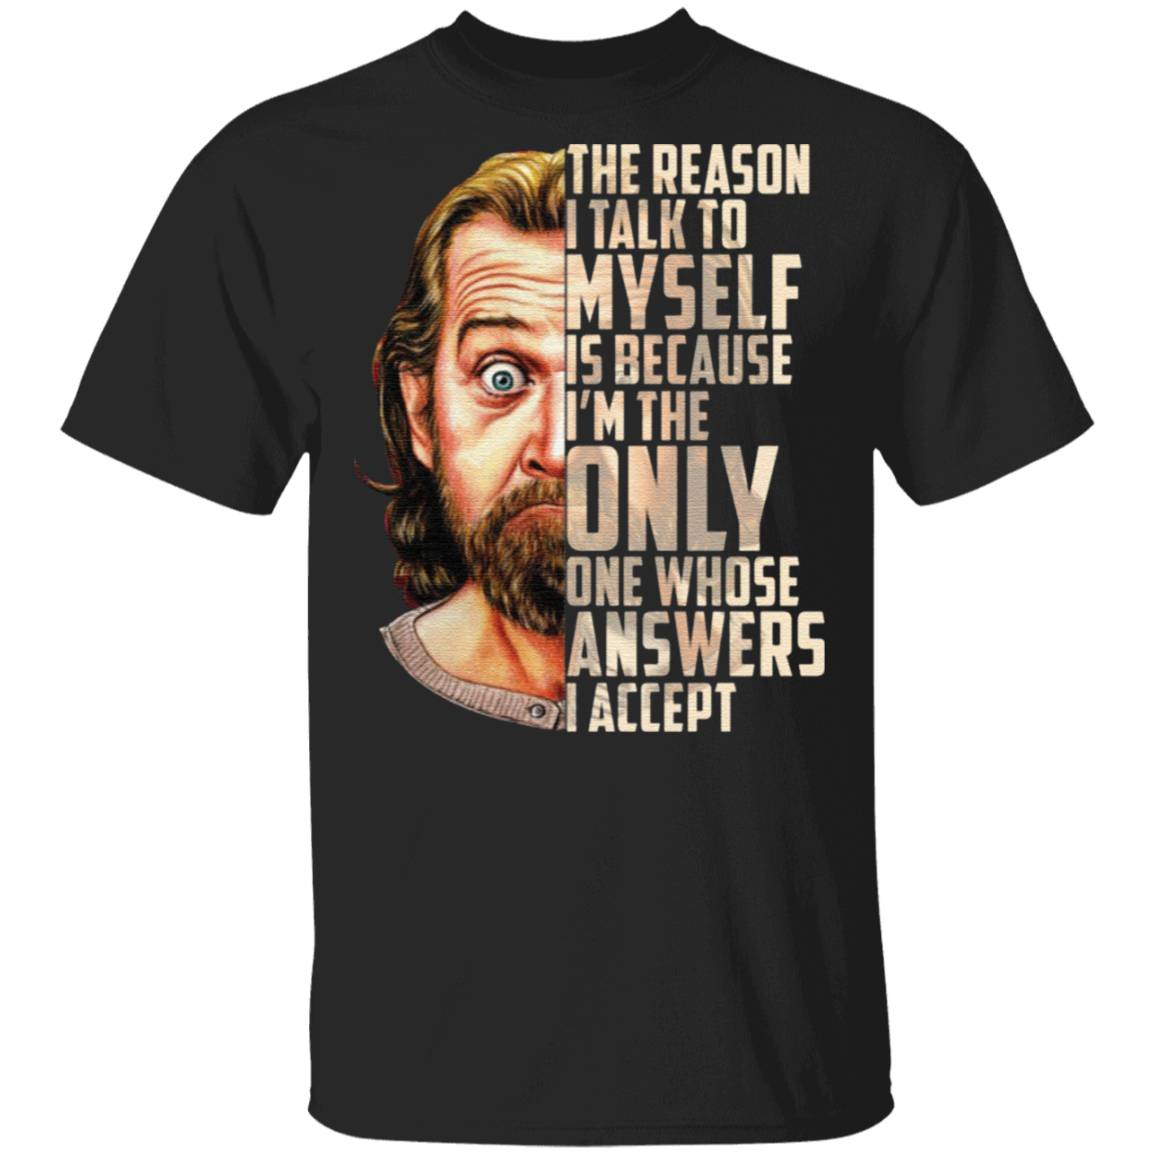 George Carlin The Reason I Talk To Myself Is Because I'm The Only One Whose Answers I Accept tshirt